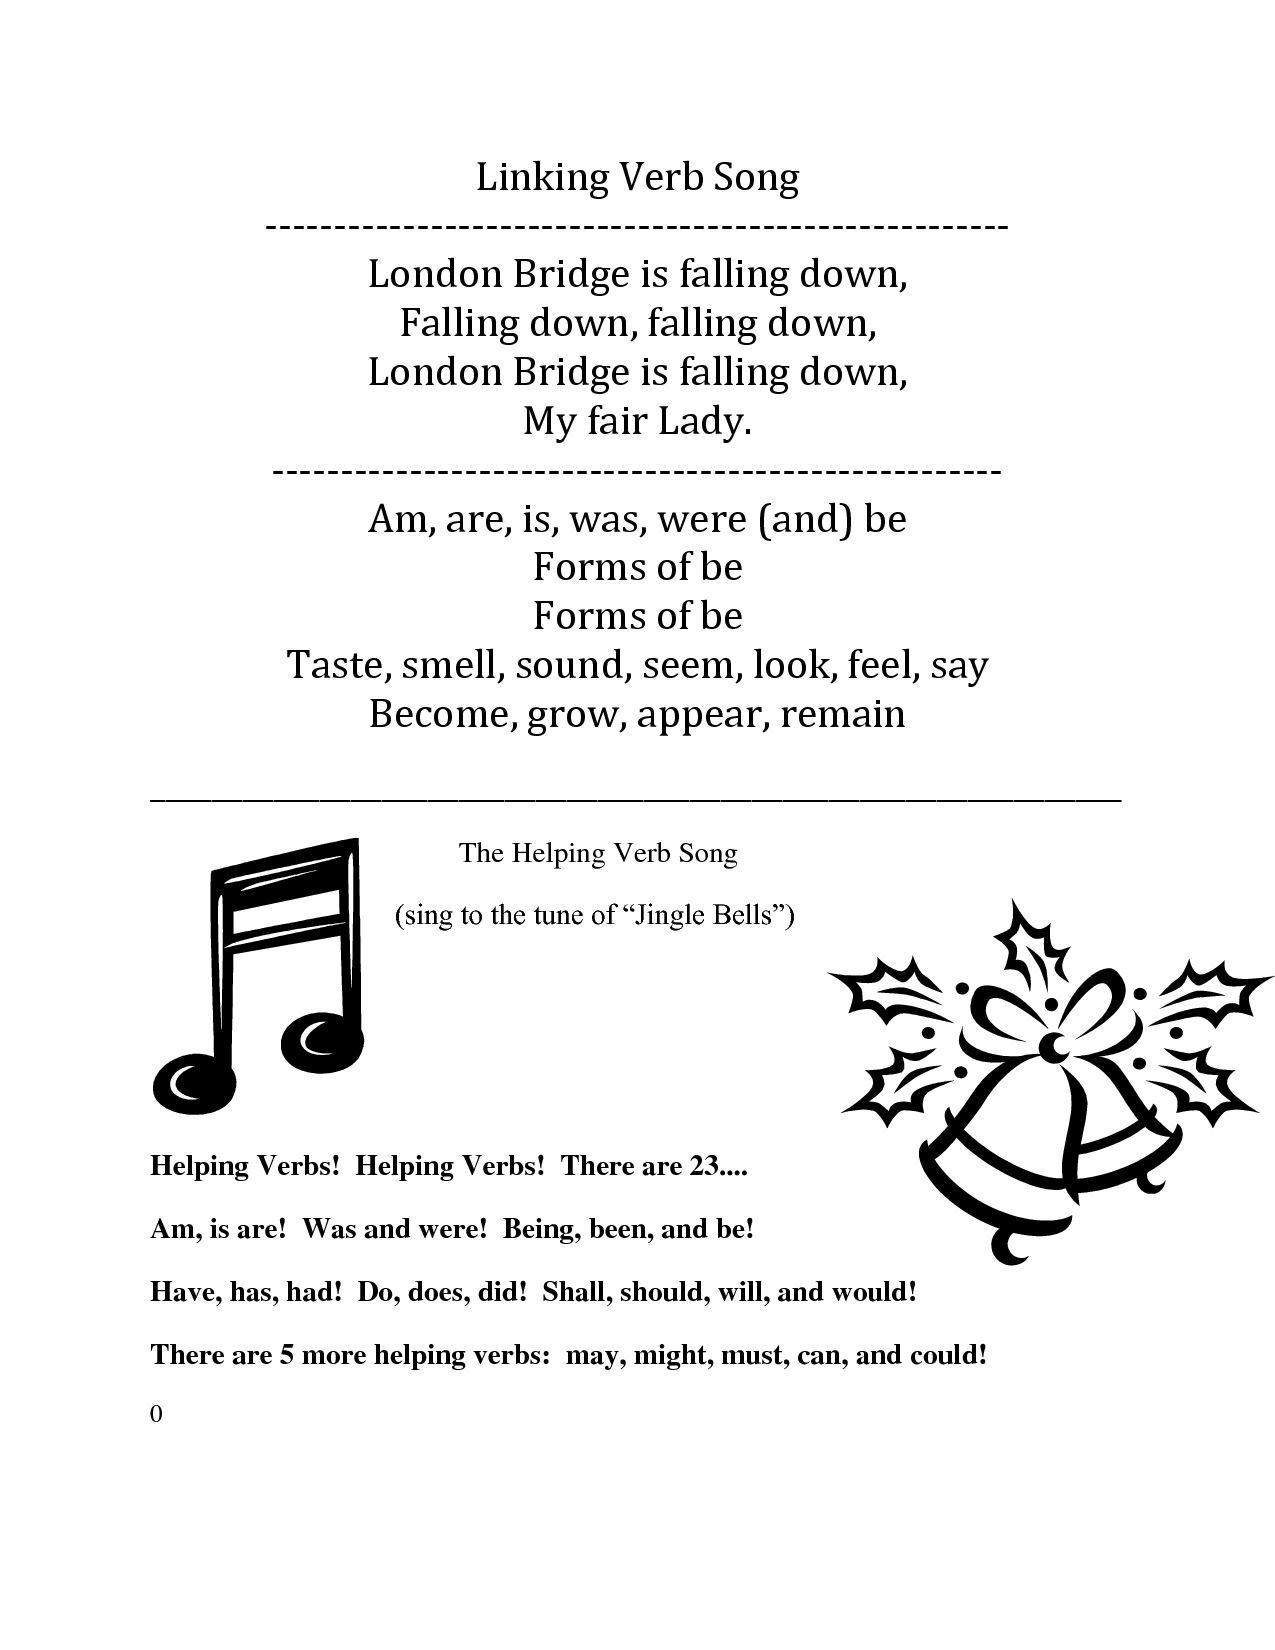 small resolution of Linking Verb Song lyrics (to London Bridge is falling down) And Helping Verb  Song (to Jingle Bells)   Linking verbs